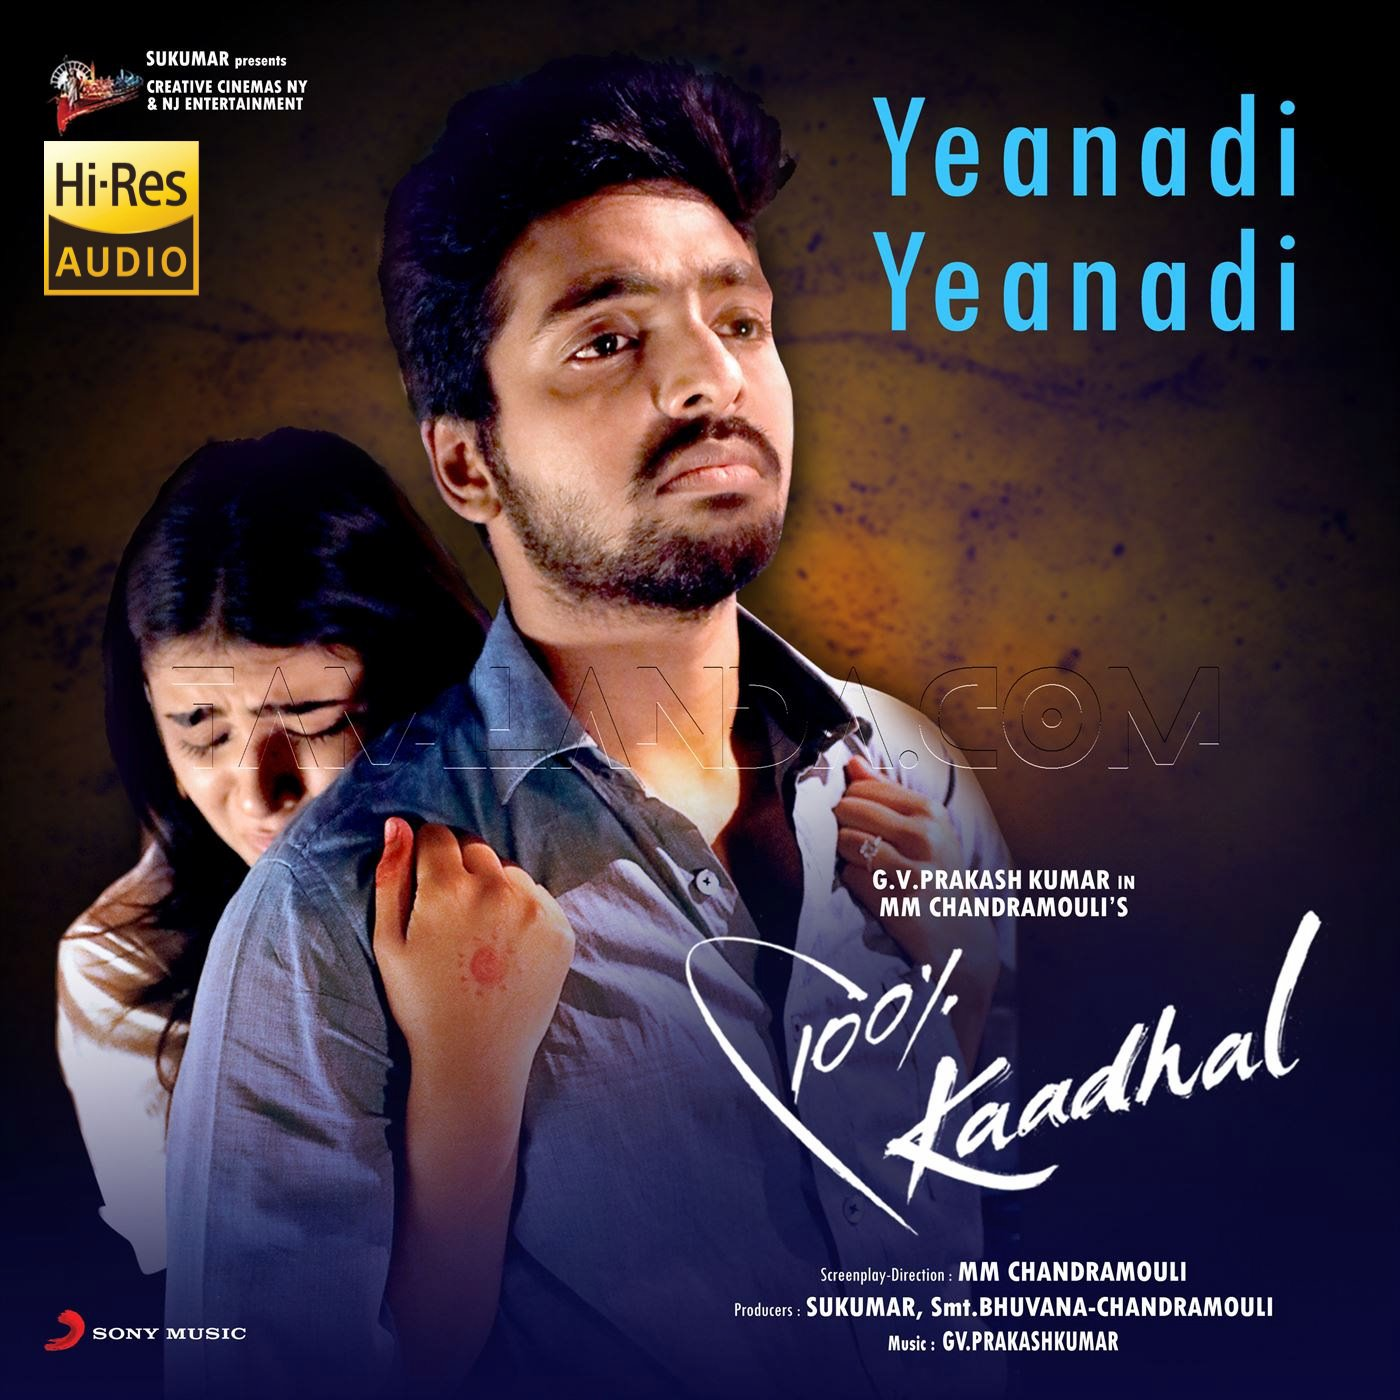 Yeanadi Yeanadi (From 100% Kaadhal) (2018) – Single 24 BIT FLAC Song